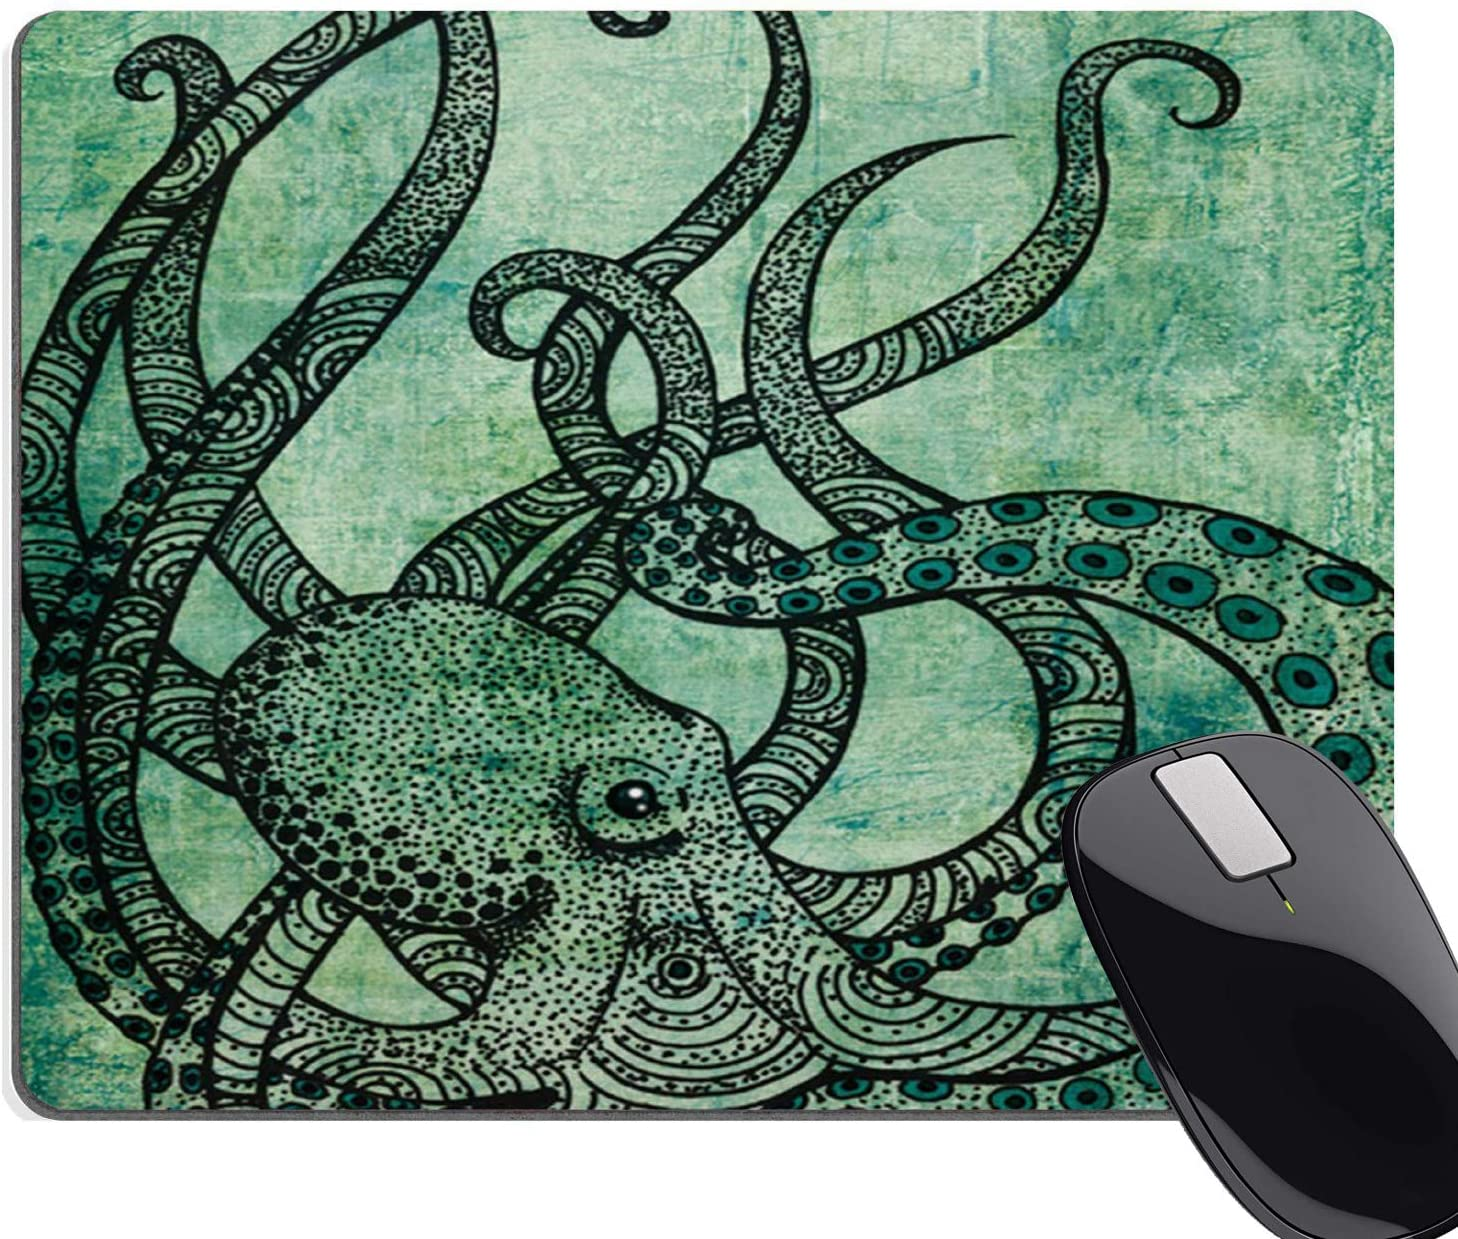 Octopus Round Mouse Pad Color Printed Mousepad Round Non-Slip Rubber Mouse Pad